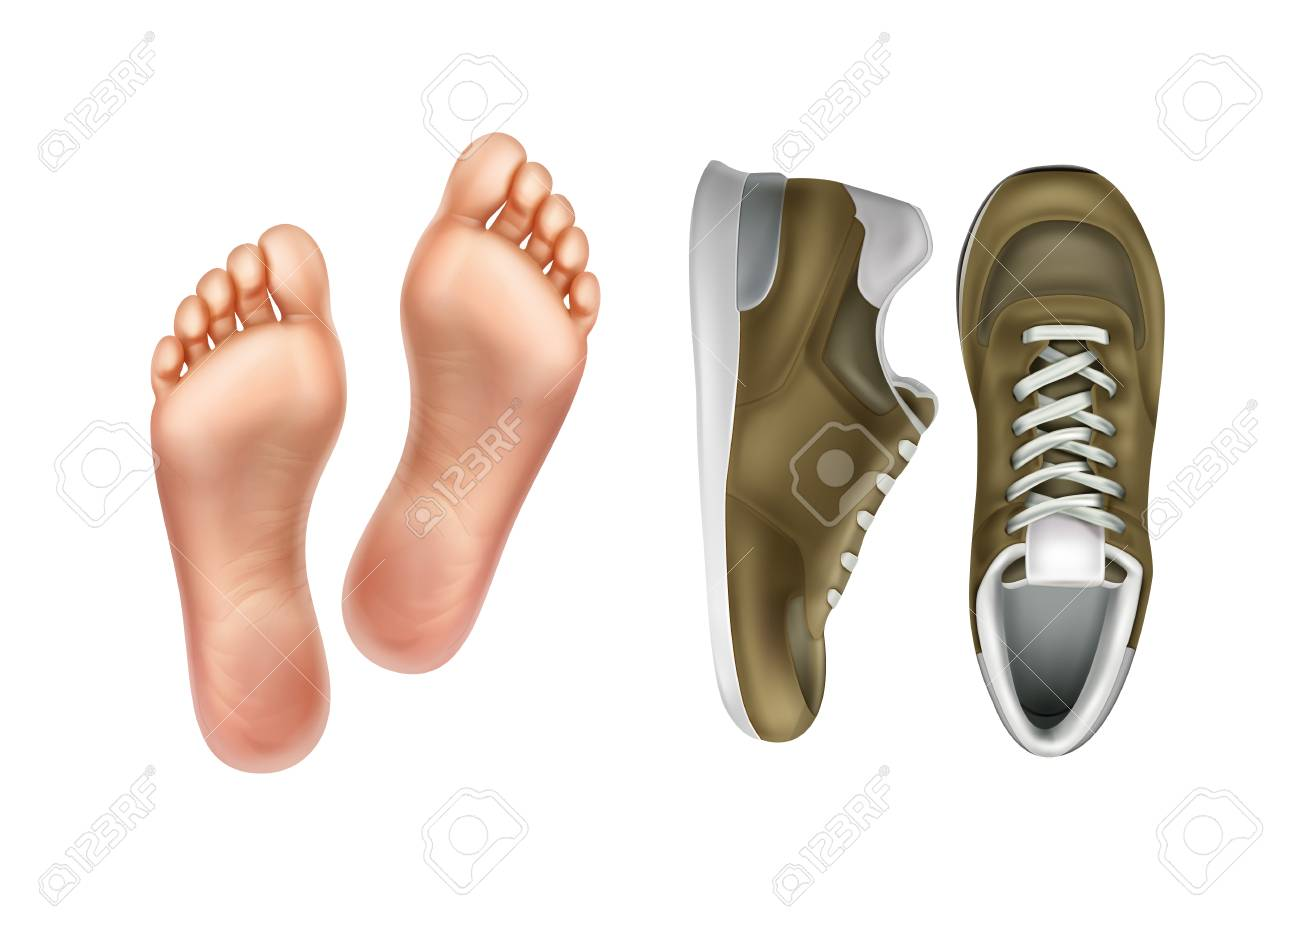 ed1b5a49a97 Vector illustration of left and right foot soles for footwear,..